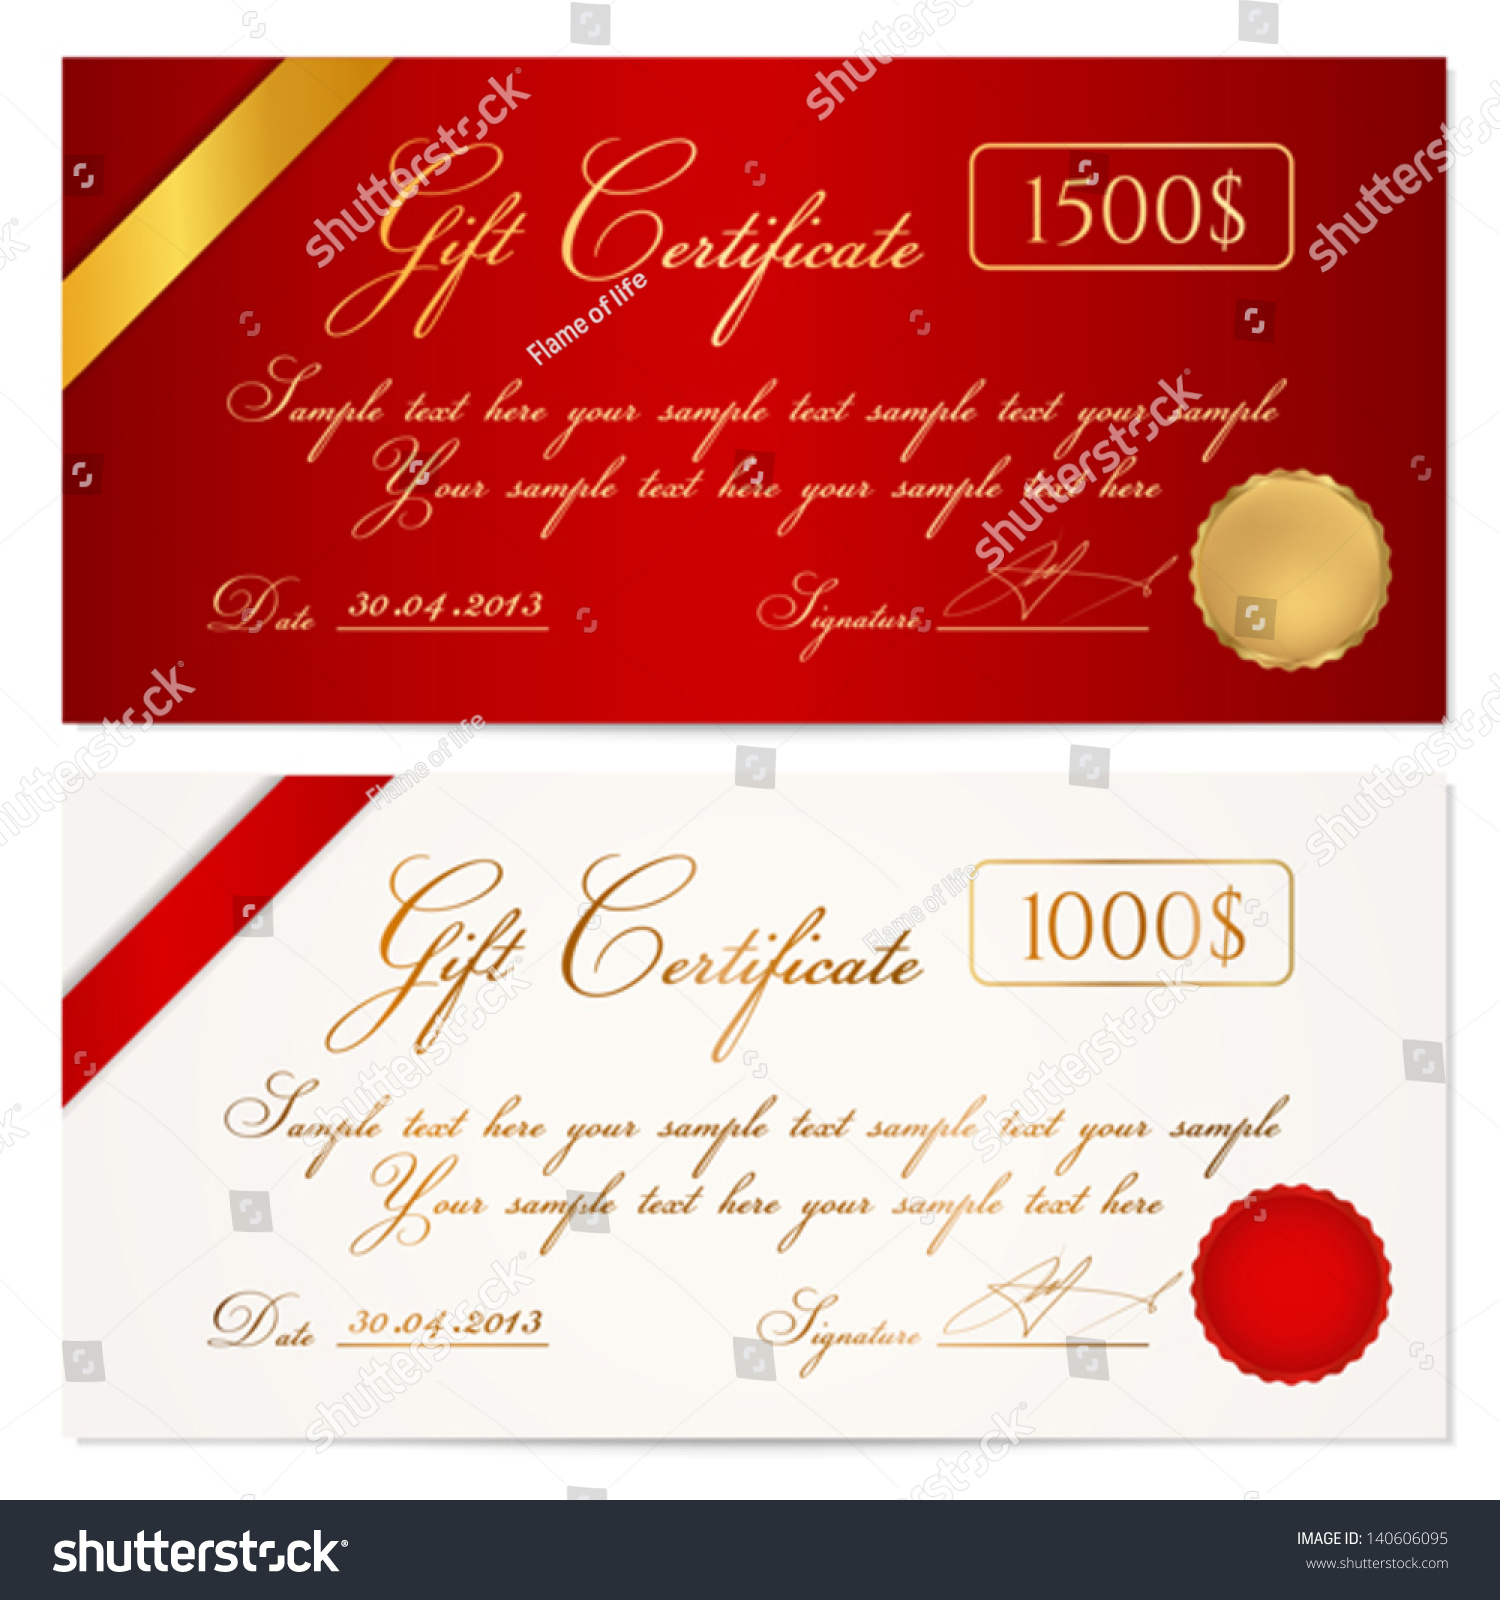 Voucher gift certificate coupon template ribbon stock vector voucher gift certificate coupon template with ribbon seal wax background design for yadclub Images